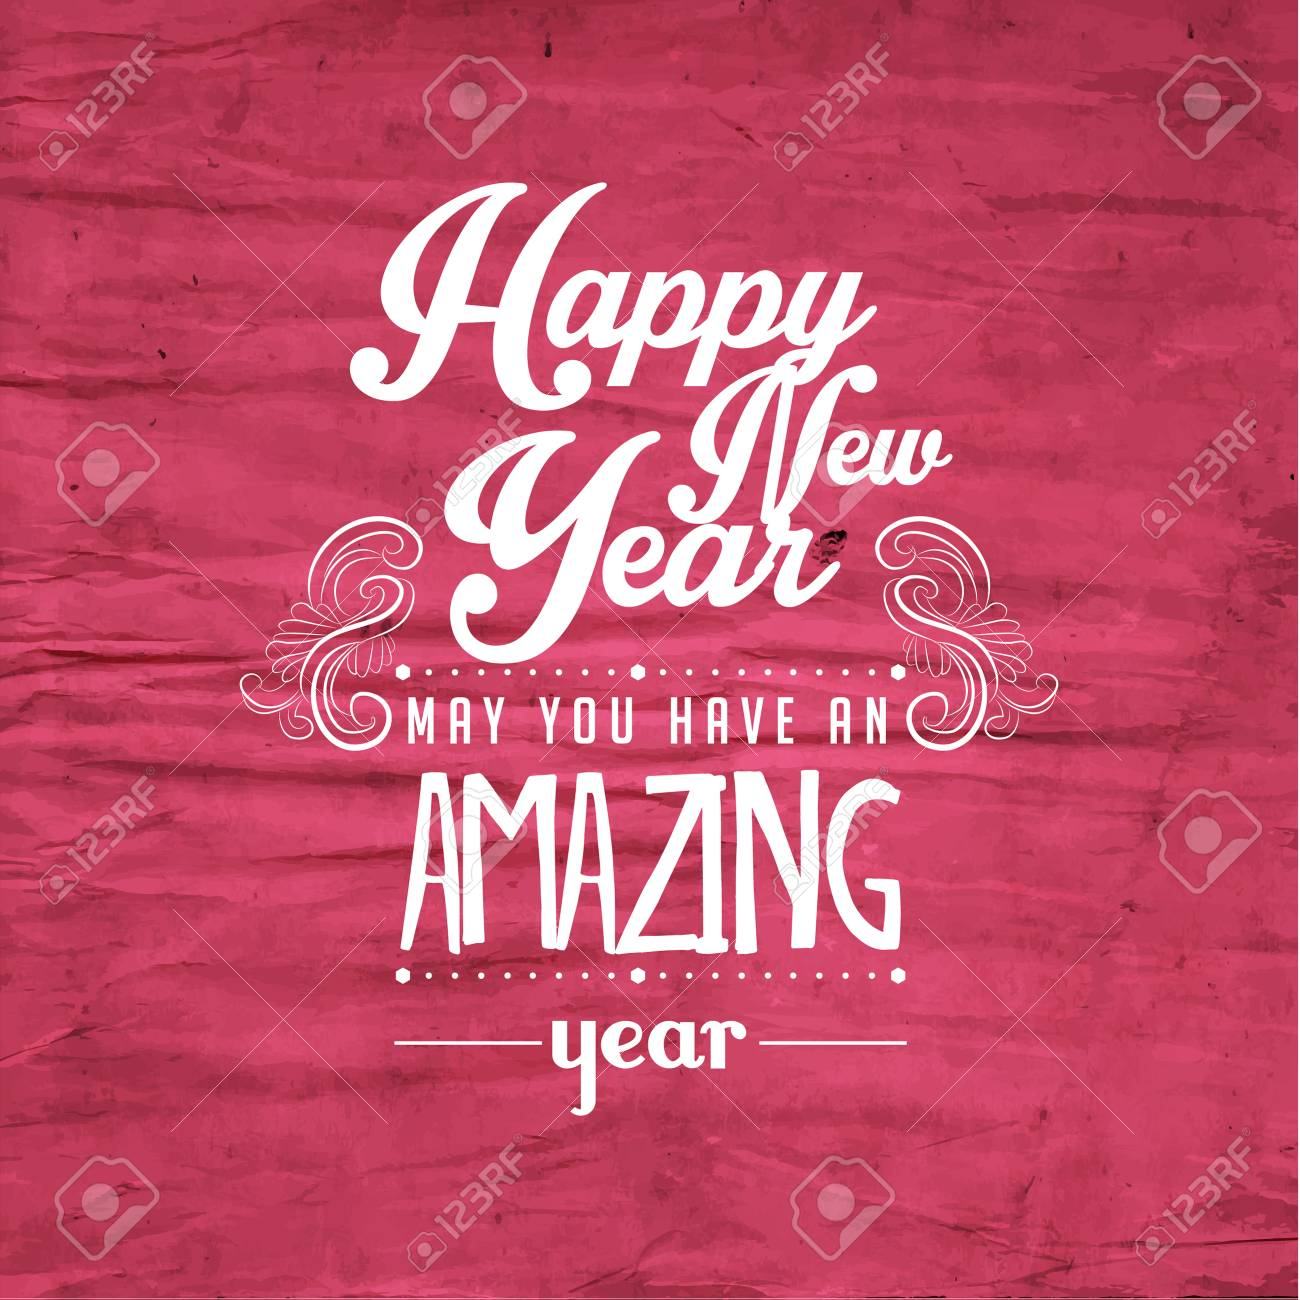 happy new year greetings quote vector design royalty cliparts